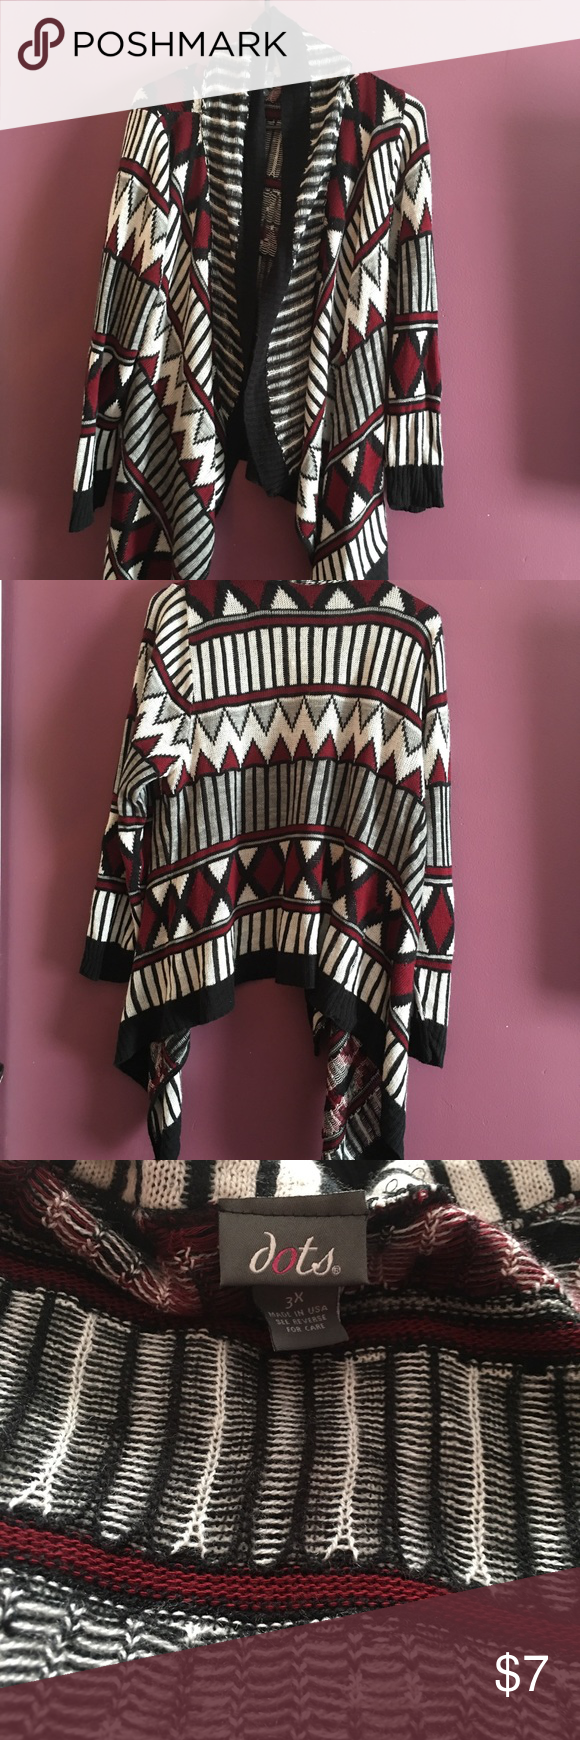 Women's Aztec Print Sweater Aztec Print Sweater coming from smoke free home.  Worn once, just have too many prints!!!  Colors are black white maroon and gray. Dots Sweaters Cardigans